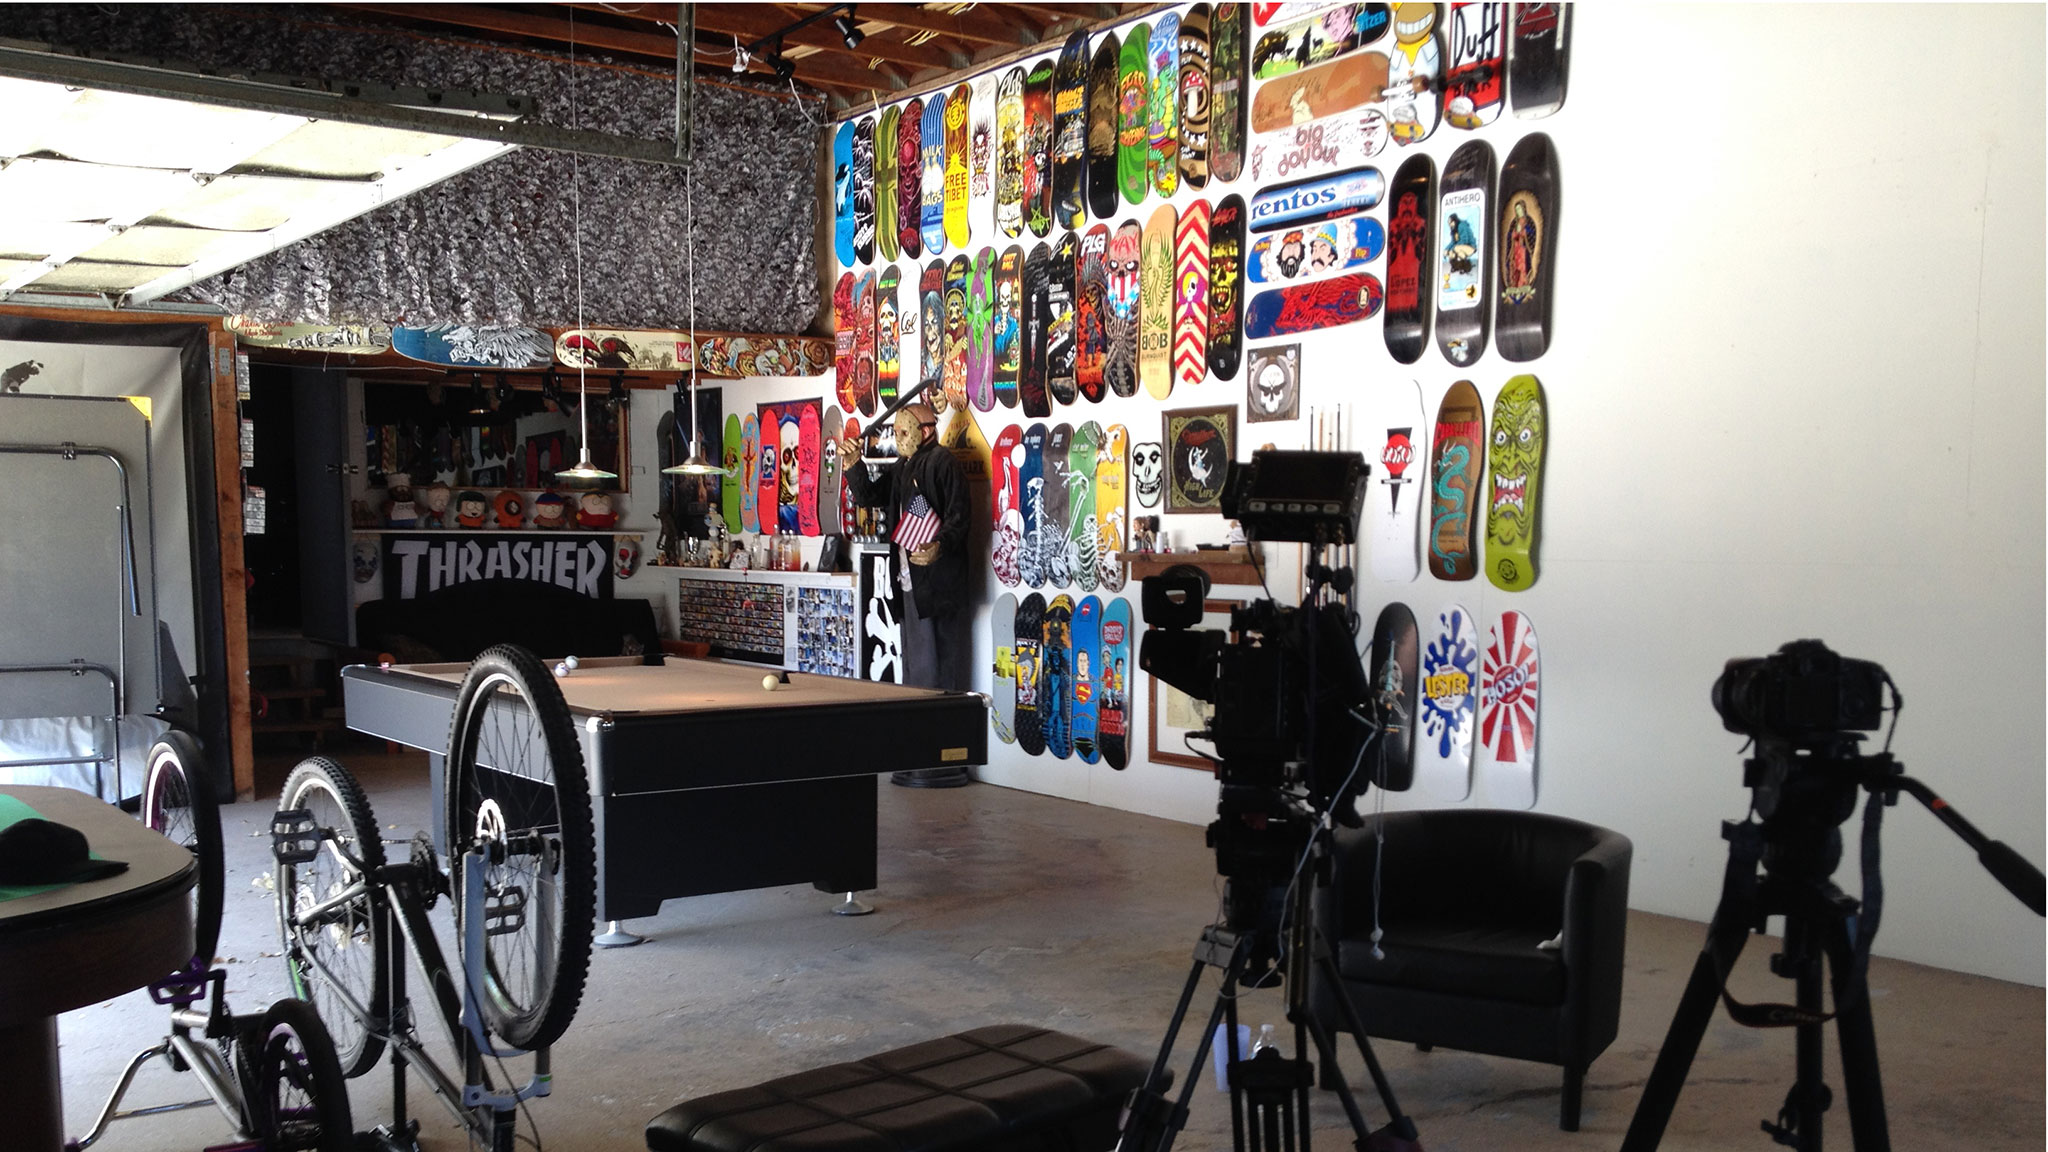 No fewer than 74 skateboards hang on the walls of Sloan's garage-turned-man cave (next to the Pantera, Slayer and Metallica posters and above his pool table), many of them signed by men he now competes against.